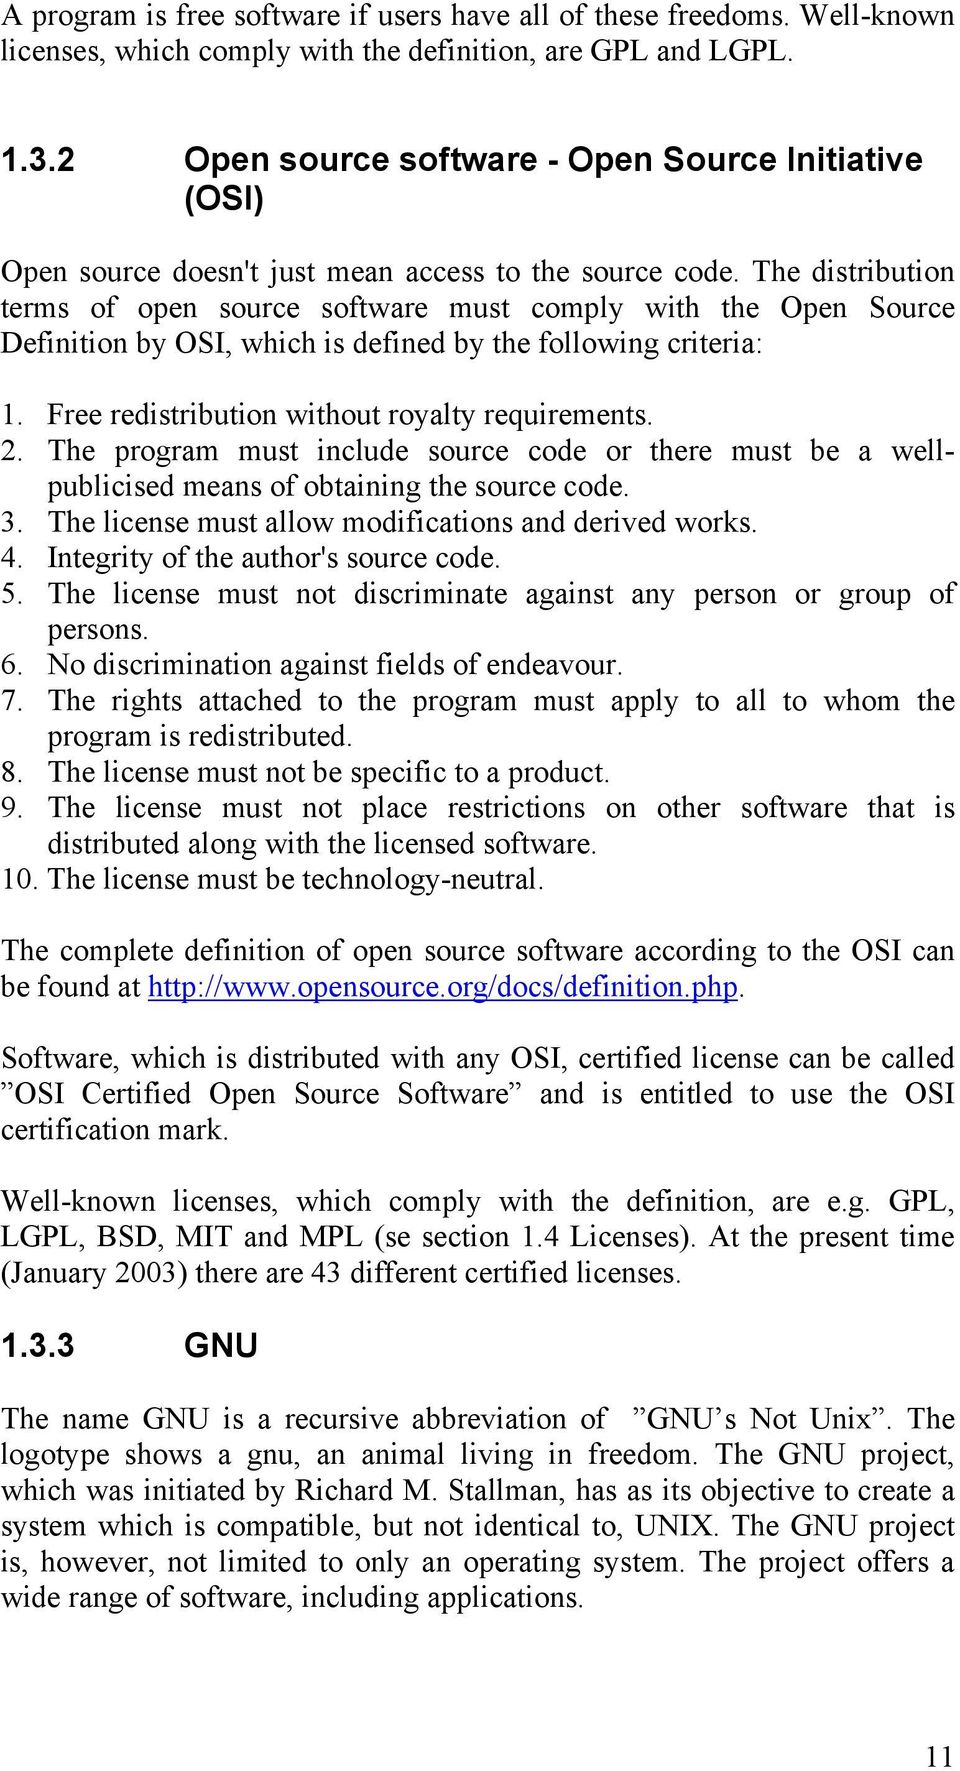 The distribution terms of open source software must comply with the Open Source Definition by OSI, which is defined by the following criteria: 1. Free redistribution without royalty requirements. 2.